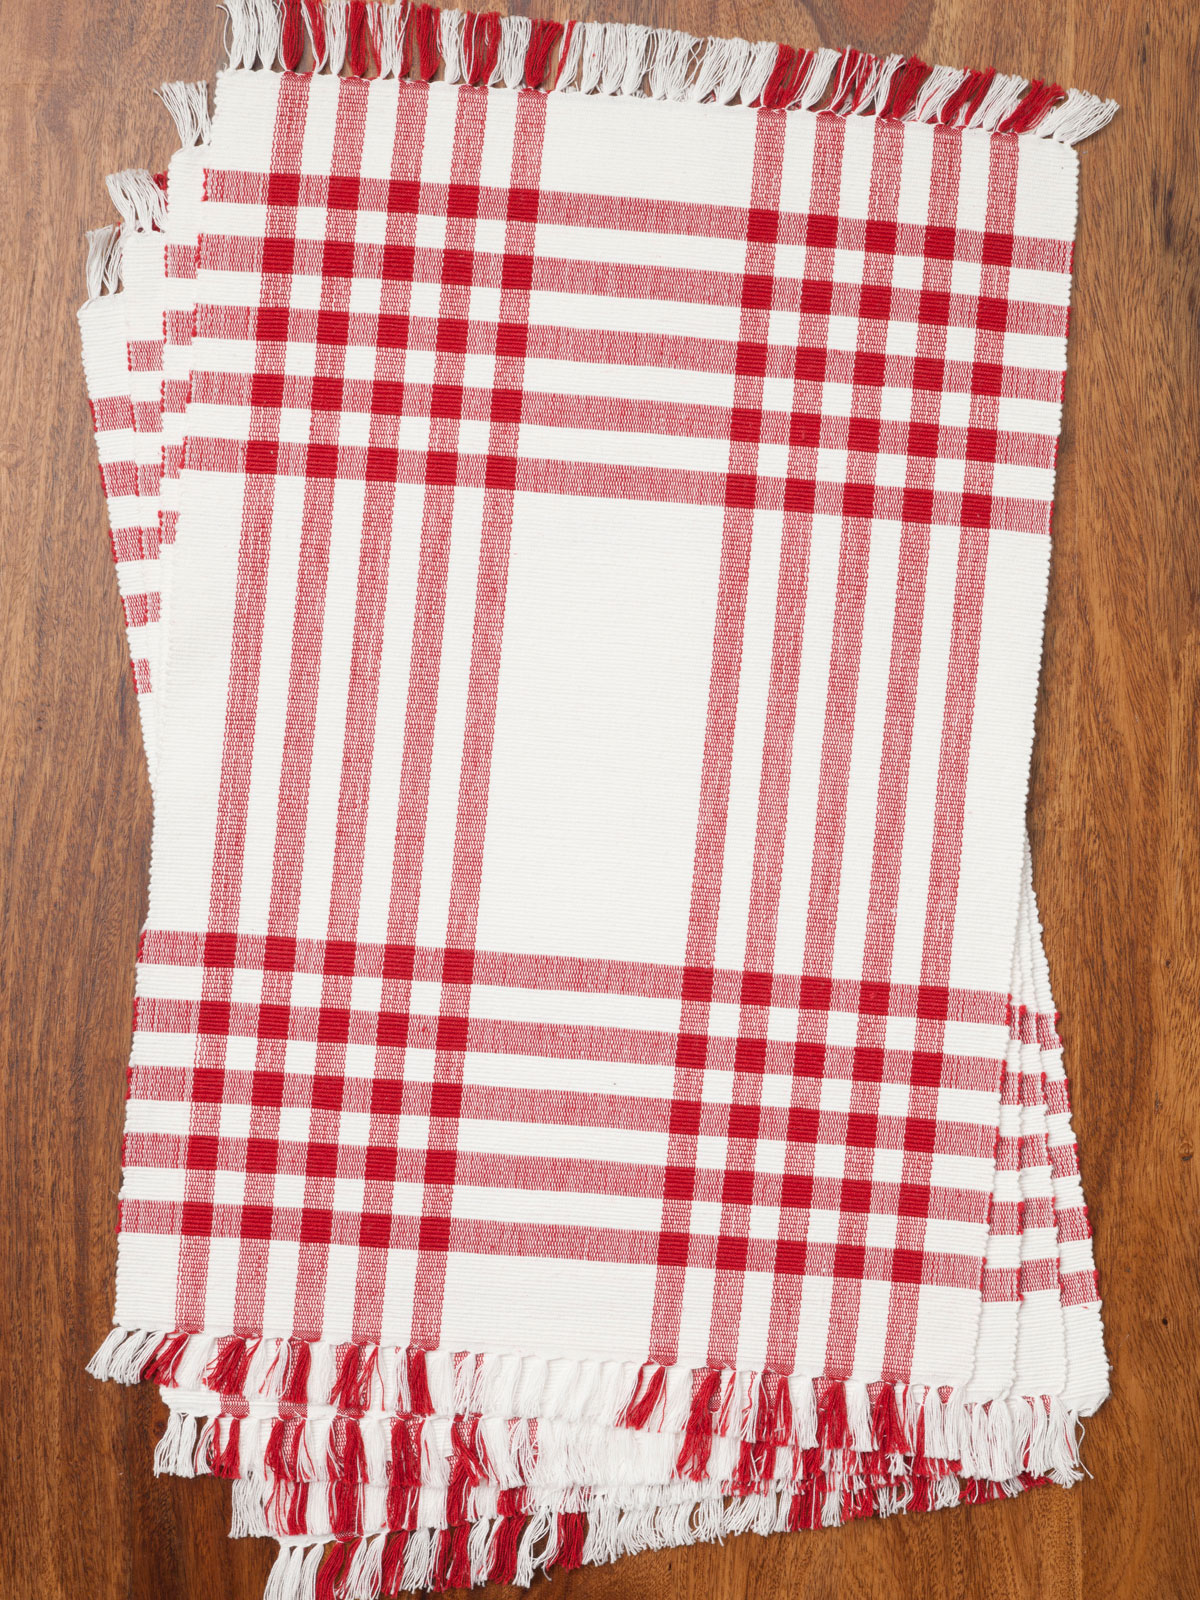 kitchen cotton yarn sears tables happy picnic gingham rib placemat set/4 - red | april's ...